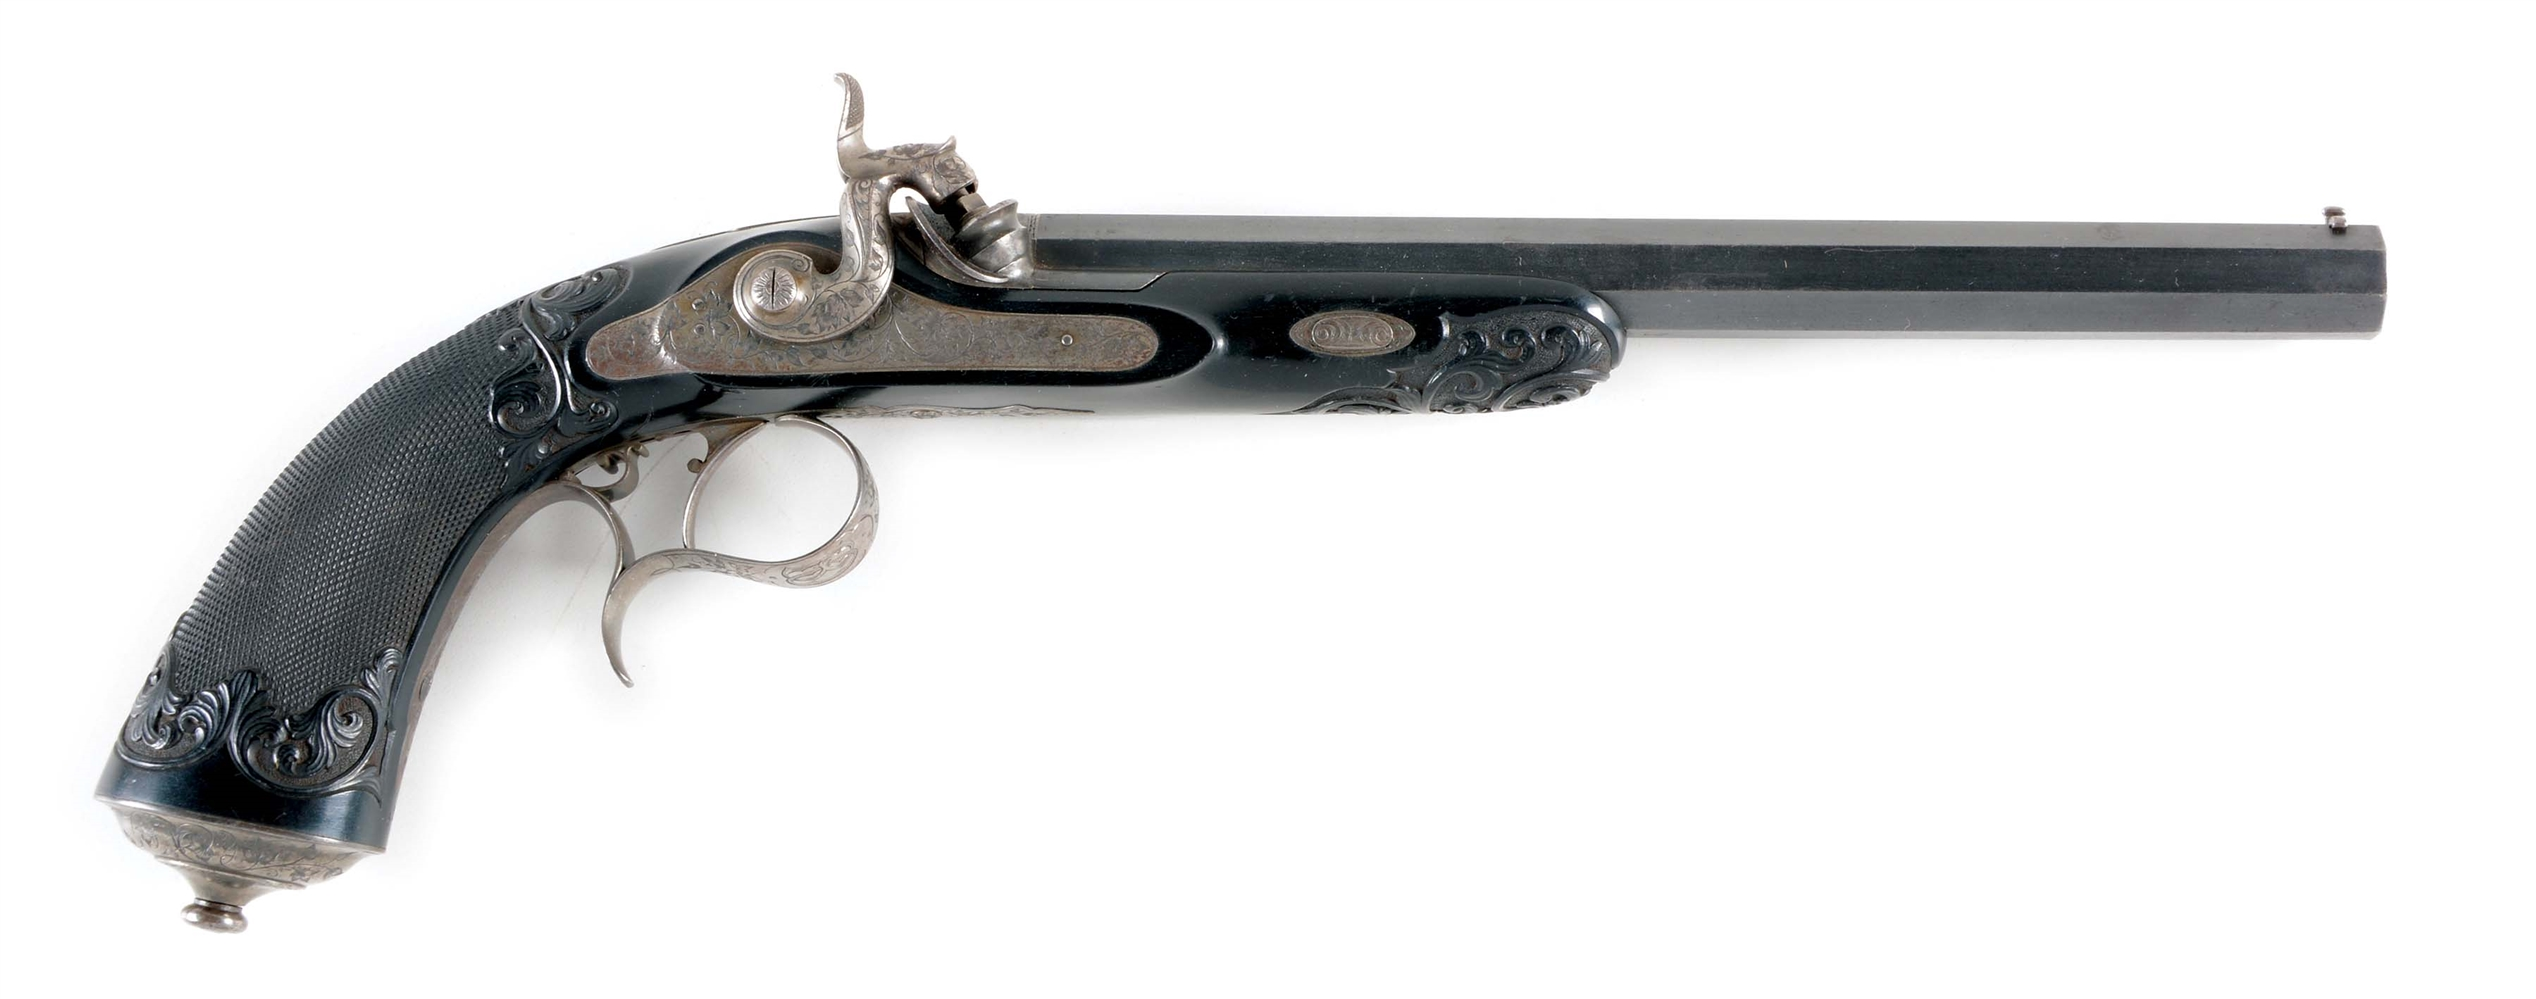 (A) GOOD FRENCH PERCUSSION TARGET PISTOL SIGNED BY FNI PAR GASTINNE RENETTE ARQUEBUSIER DE EMPEROR DE PARIS WITH FINELY CARVED AND CHECKERED EBONY STOCK CIRCA 1860.